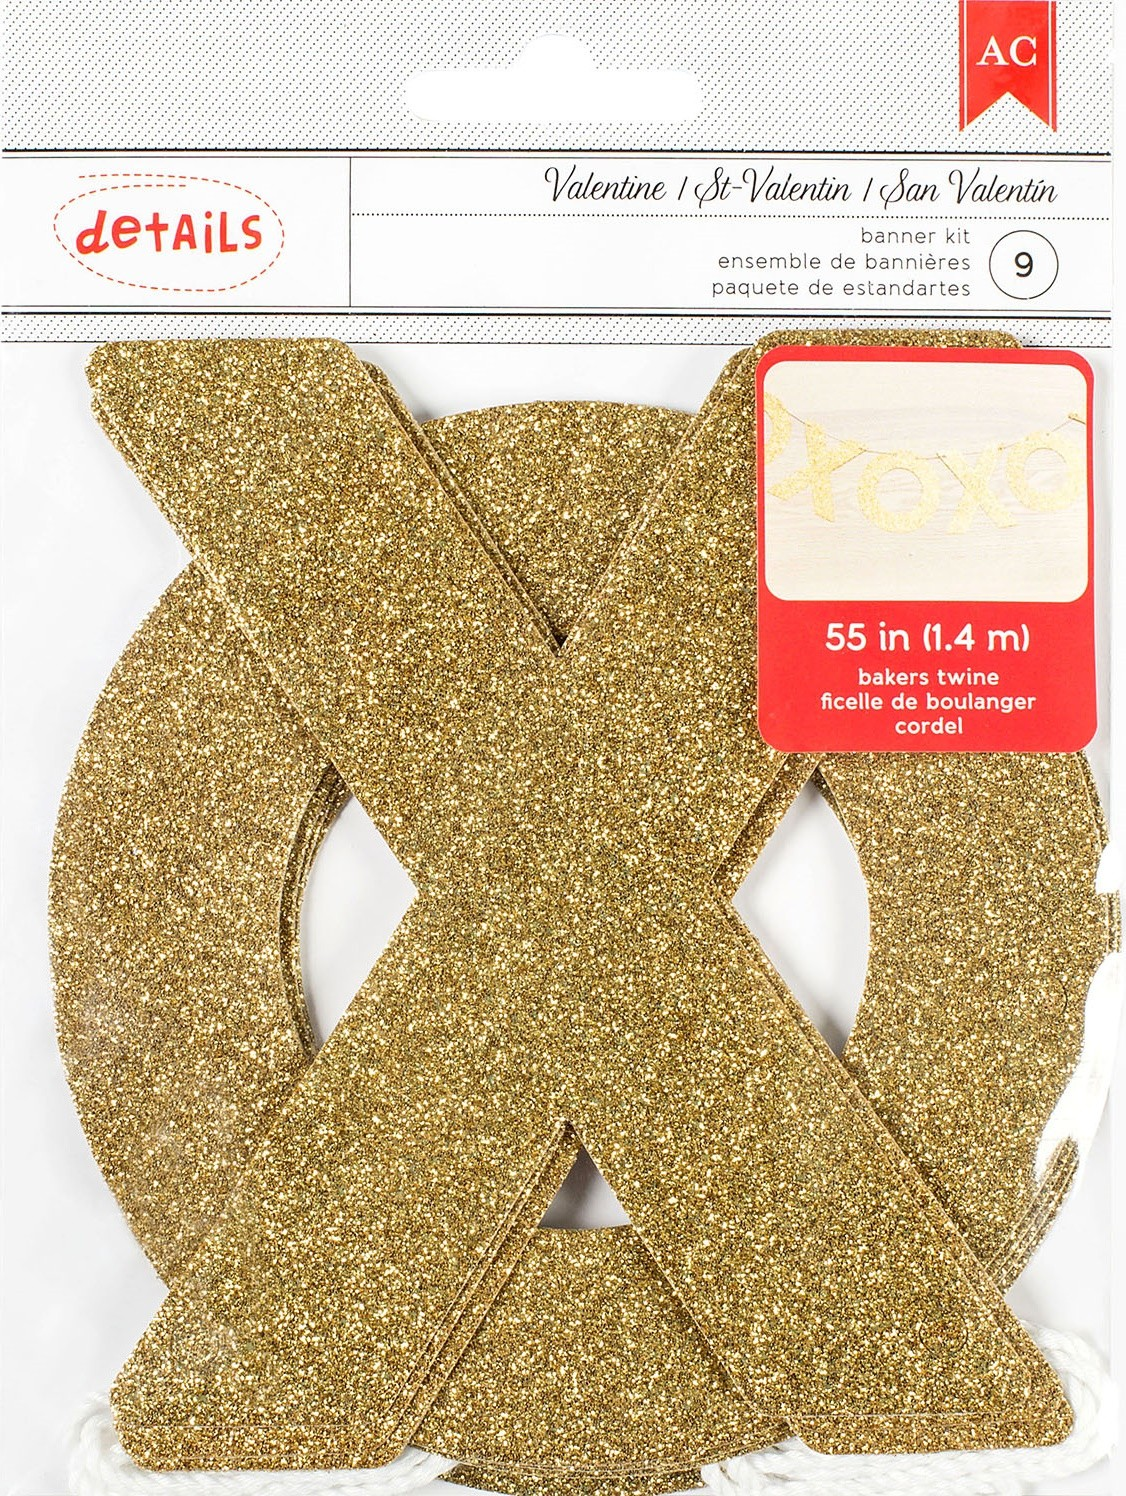 Gold Glittered XOXO Banner Kit Valentine